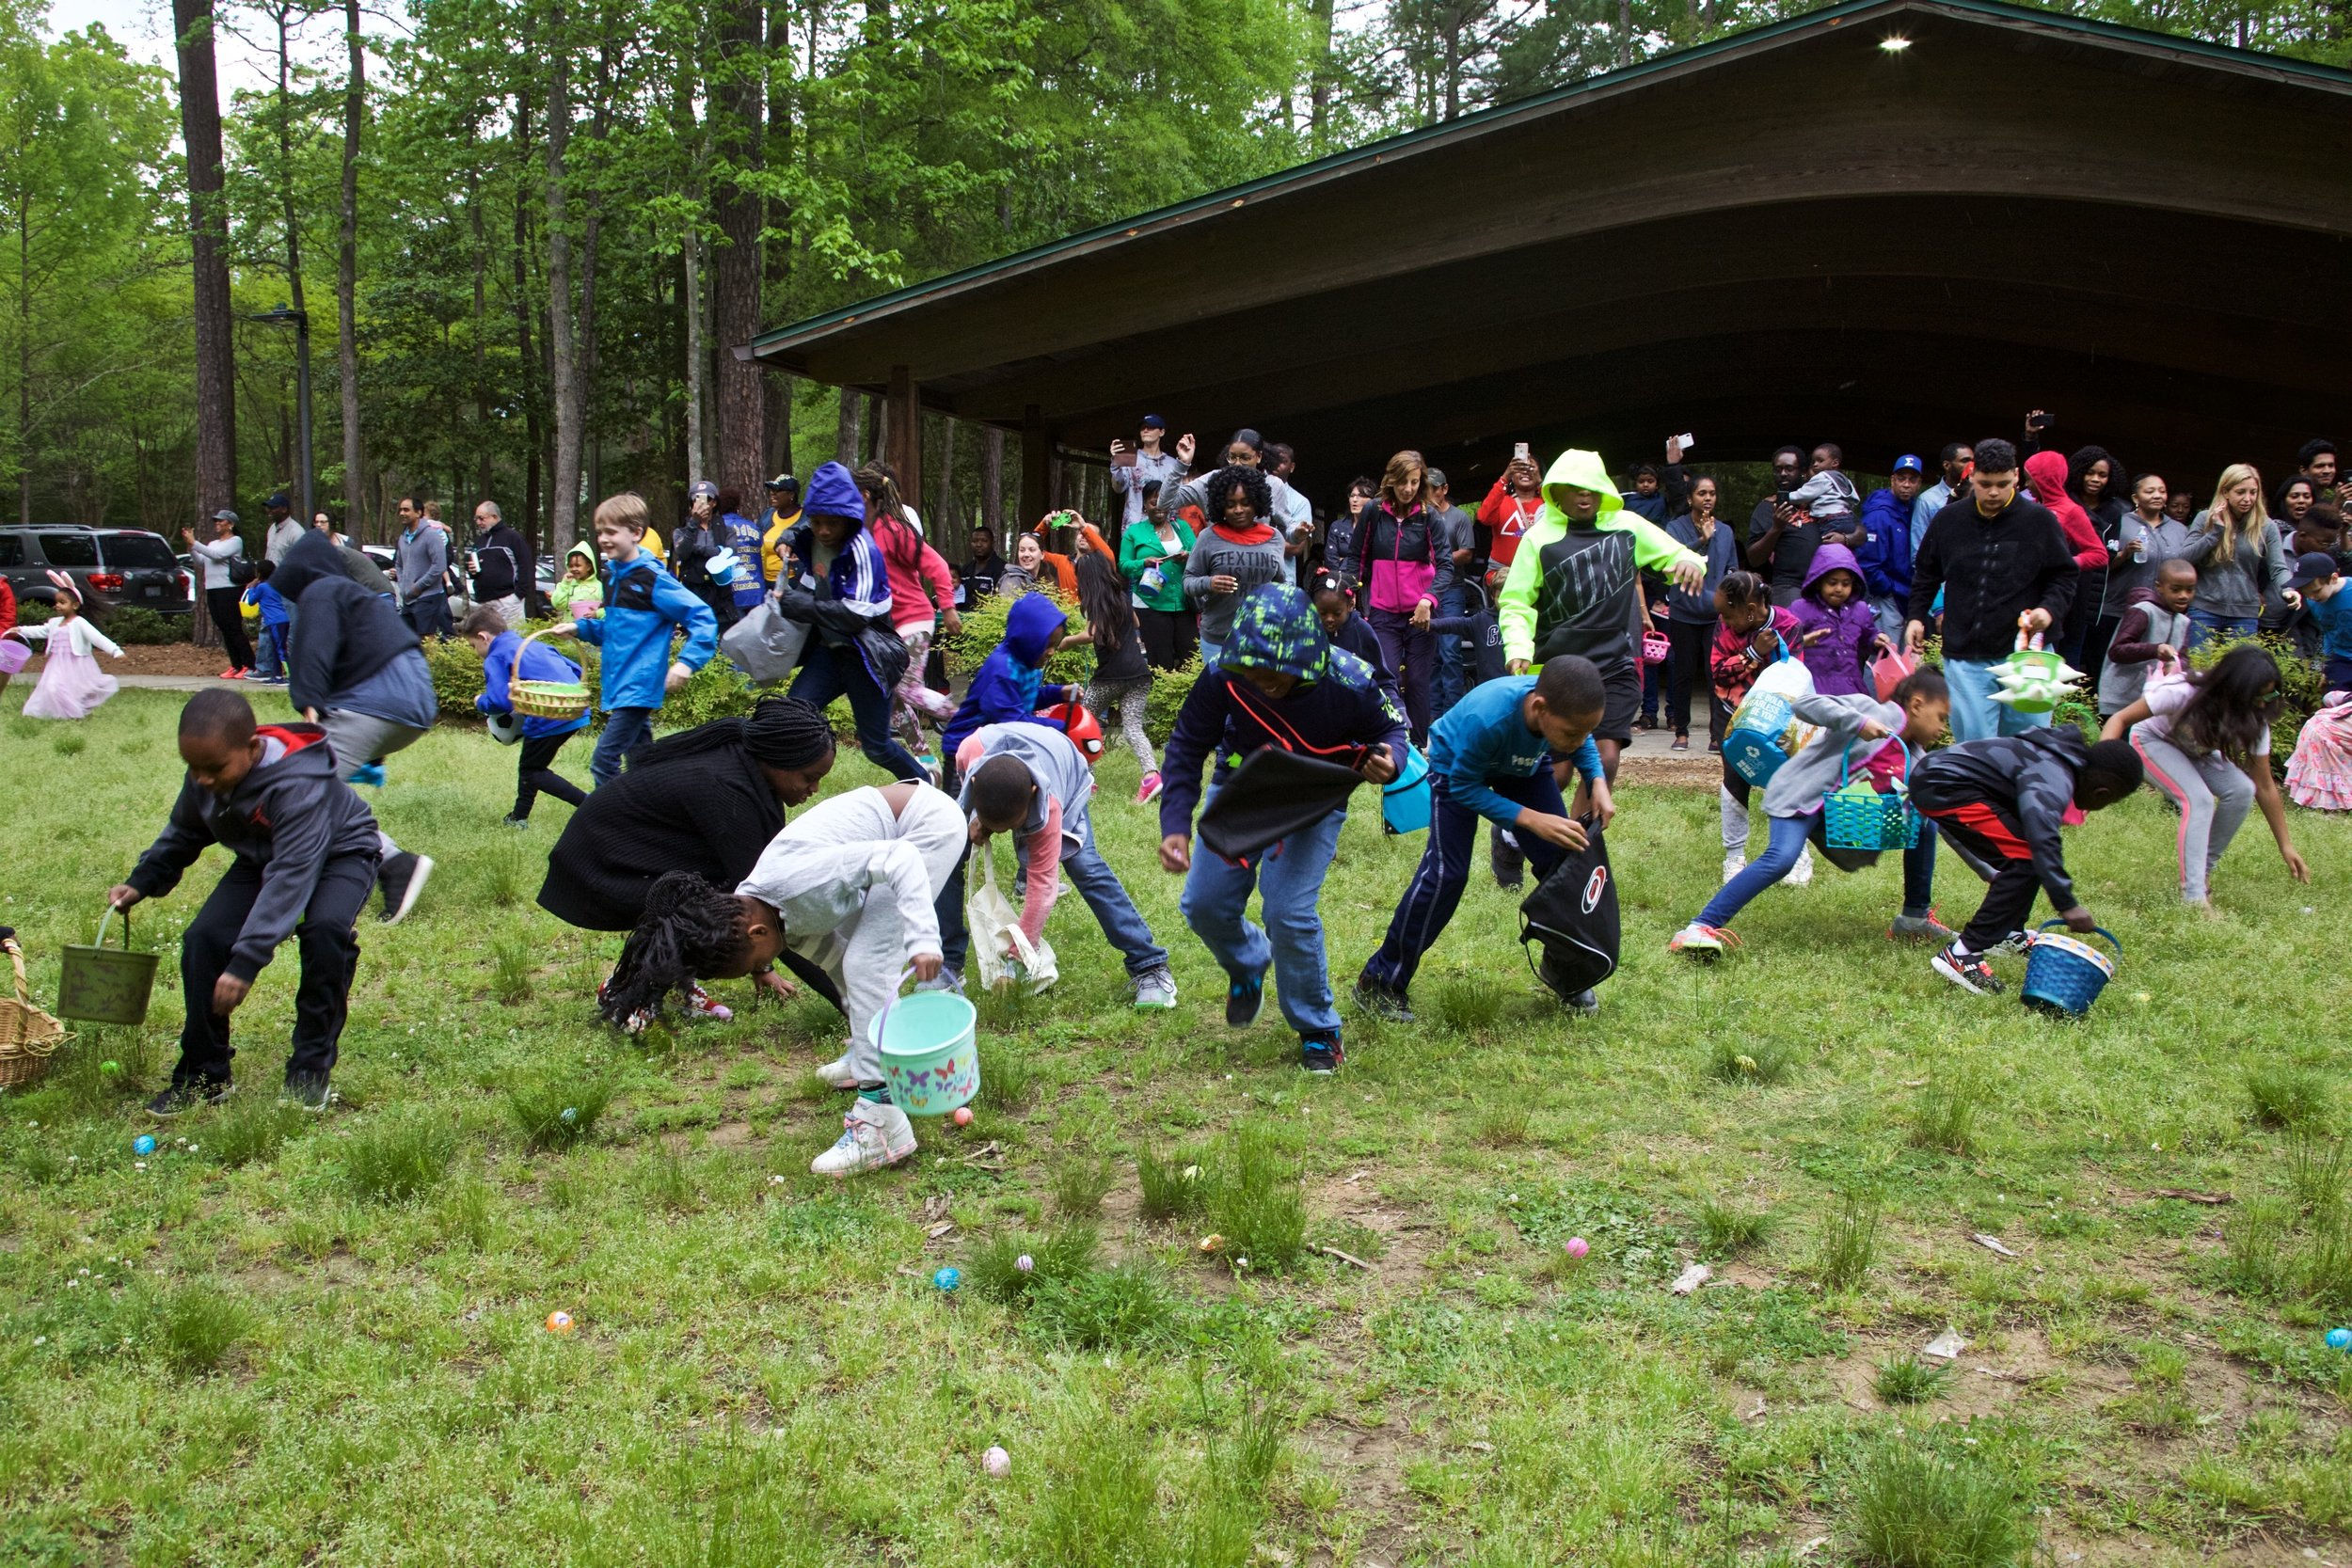 2019.4.20 Raleigh NPHC Easter Egg Hunt by StanChambersJr Photography 26.jpg